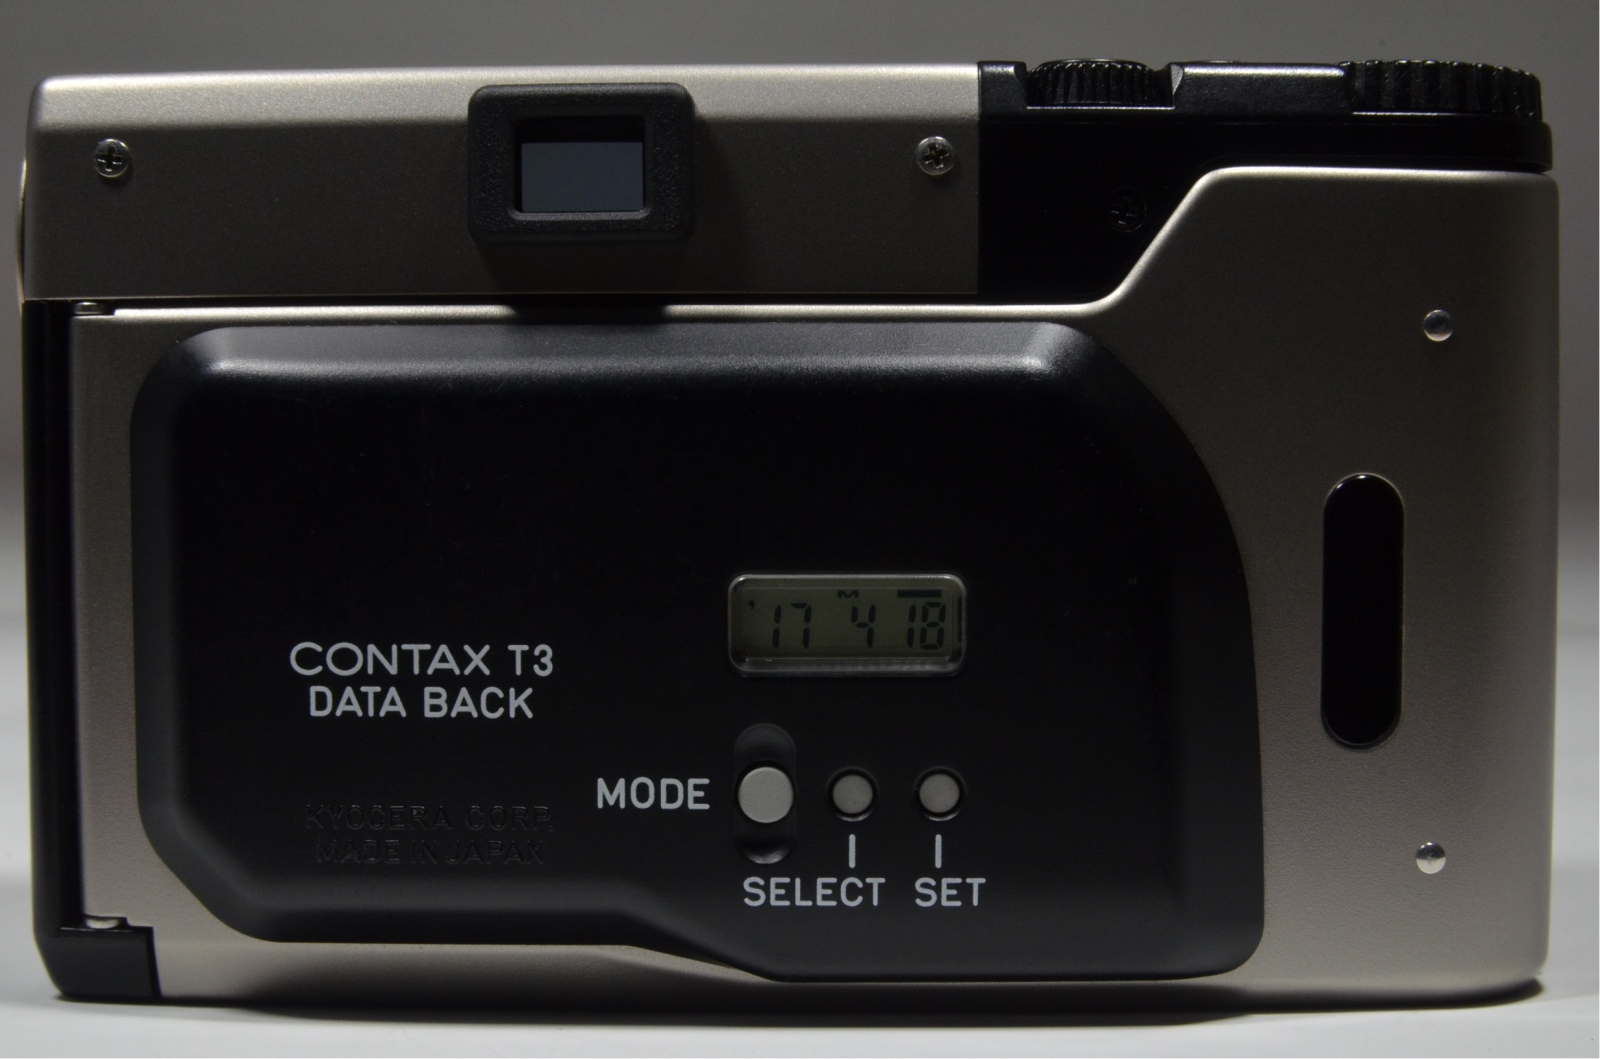 contax t3 data back 'double teeth' p&s 35mm film camera